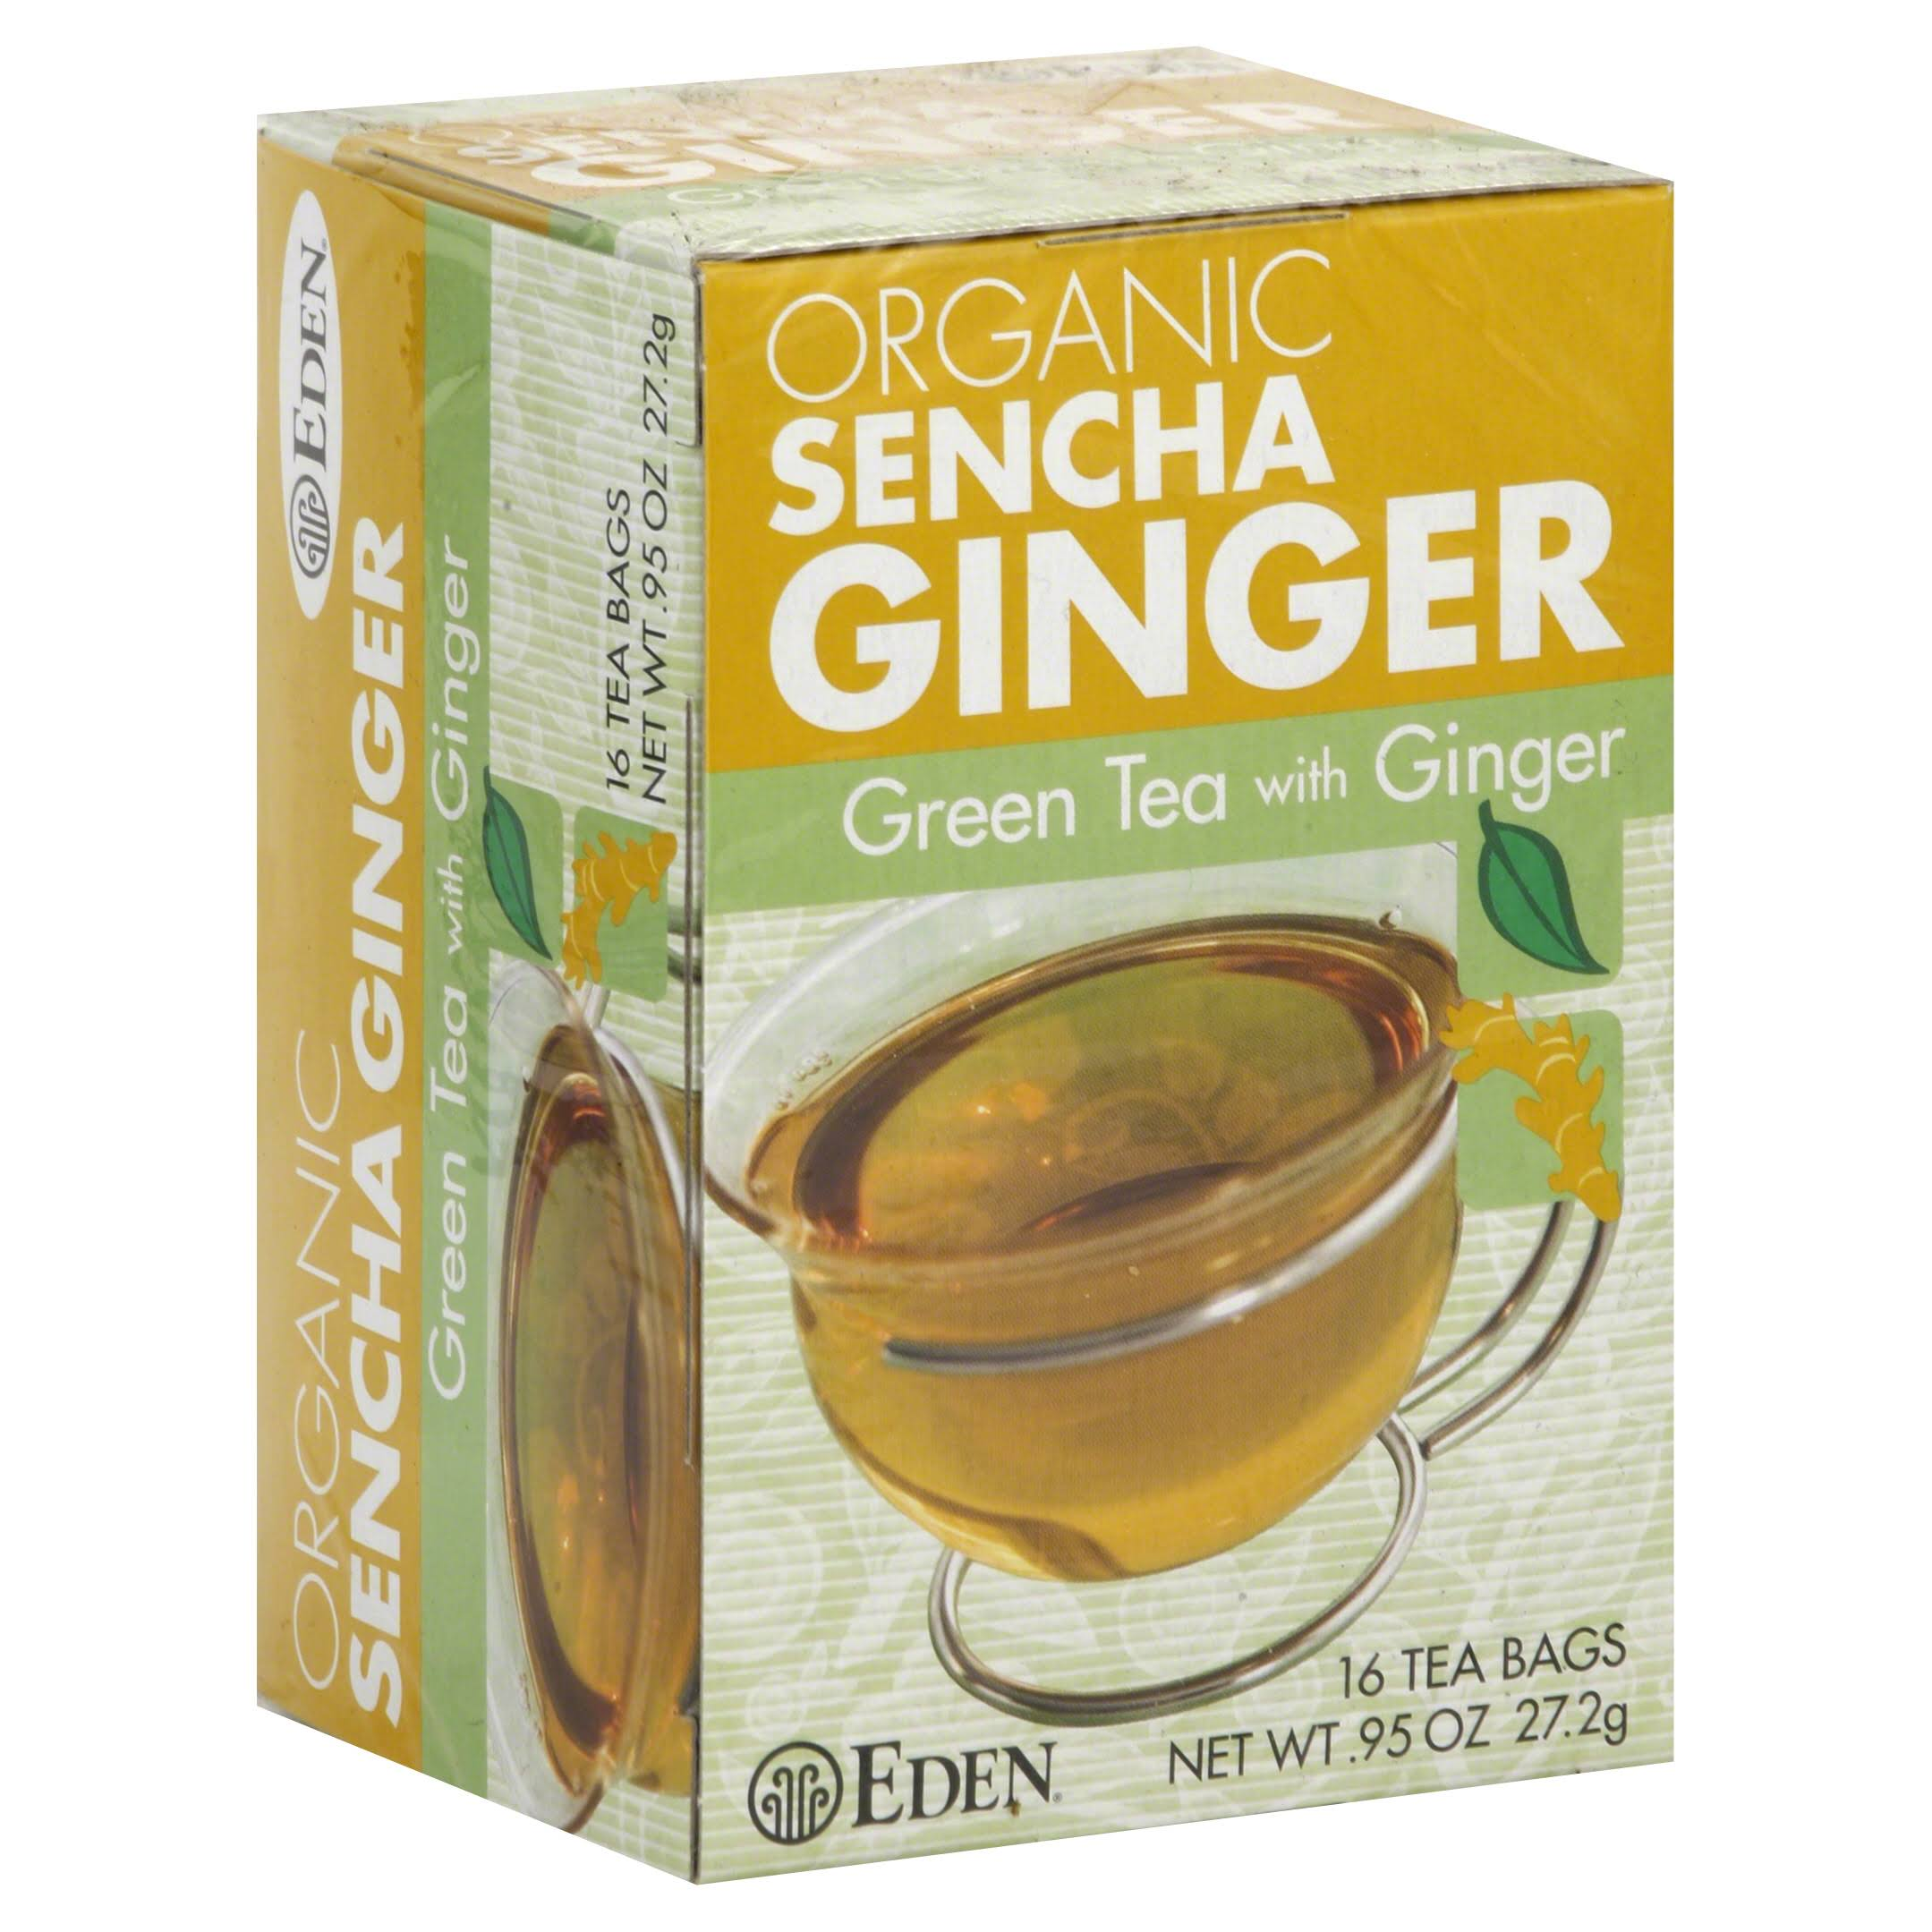 Eden Foods Organic Sencha Ginger Green Tea with Ginger - 16 Tea Bags